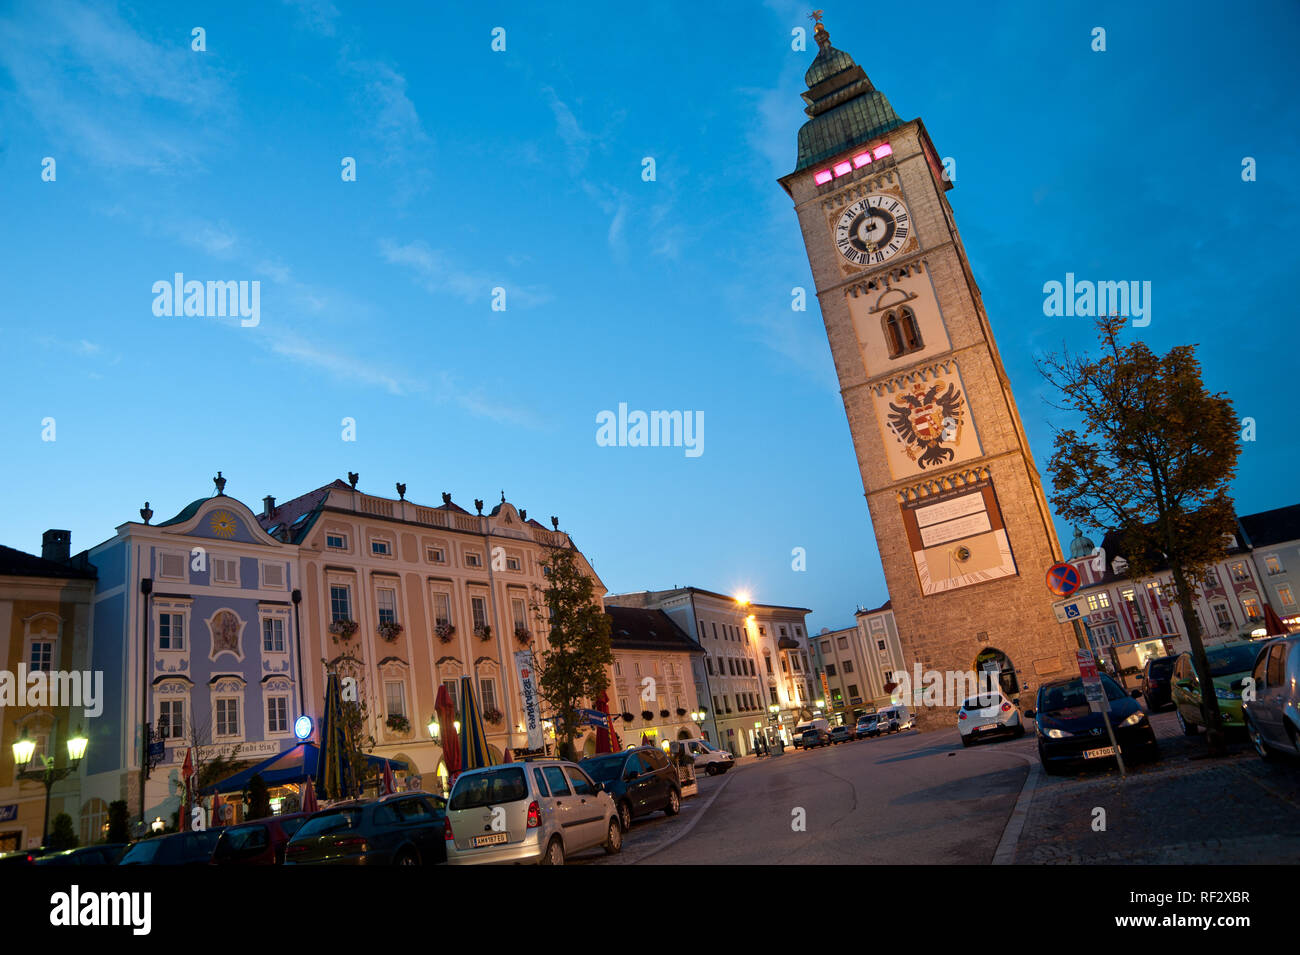 Stadtturm In Enns High Resolution Stock Photography and Images   Alamy